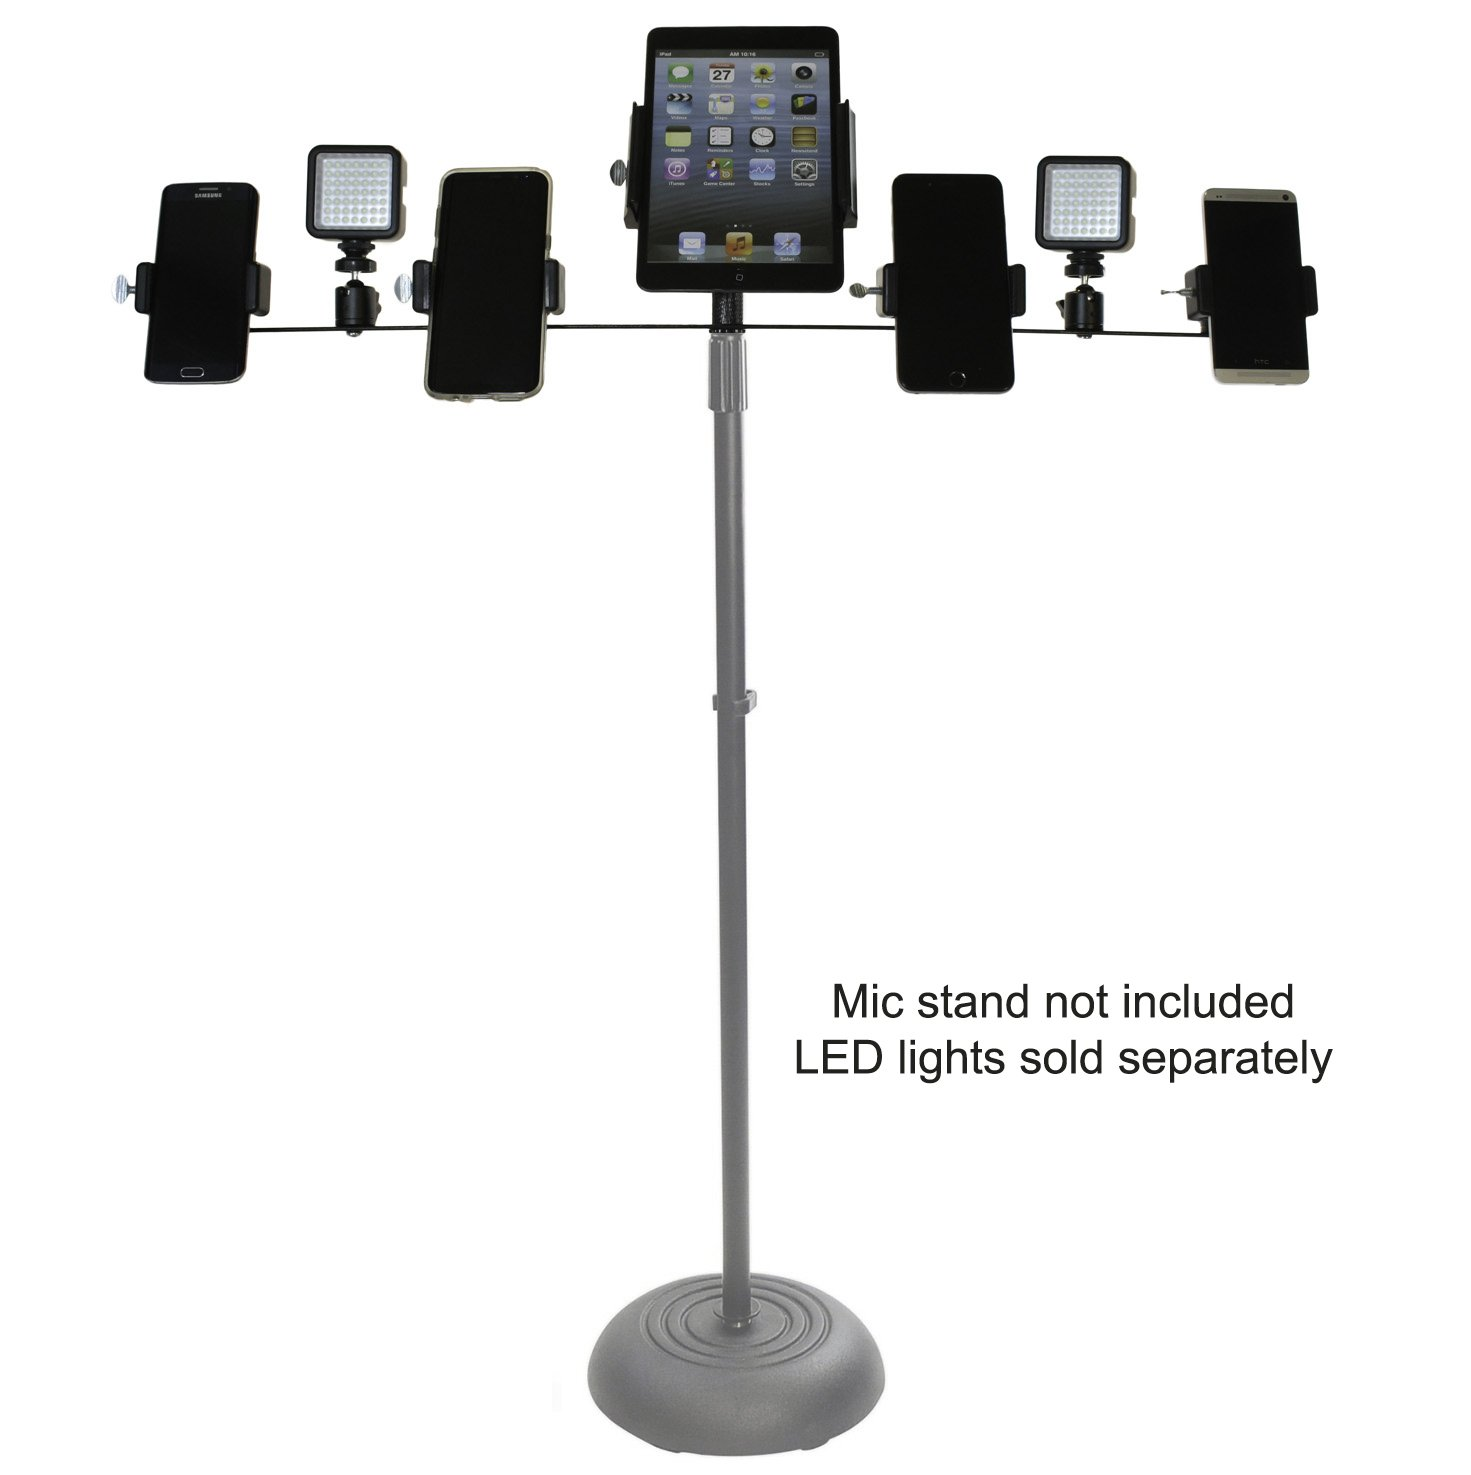 Livestream Gear - Multiple Device Bar Mount for Tablets & Phones to fit on top of Standard Mic Stands. Live Stream or Record Video with Multiple Devices During Events. (7 Device Bar)